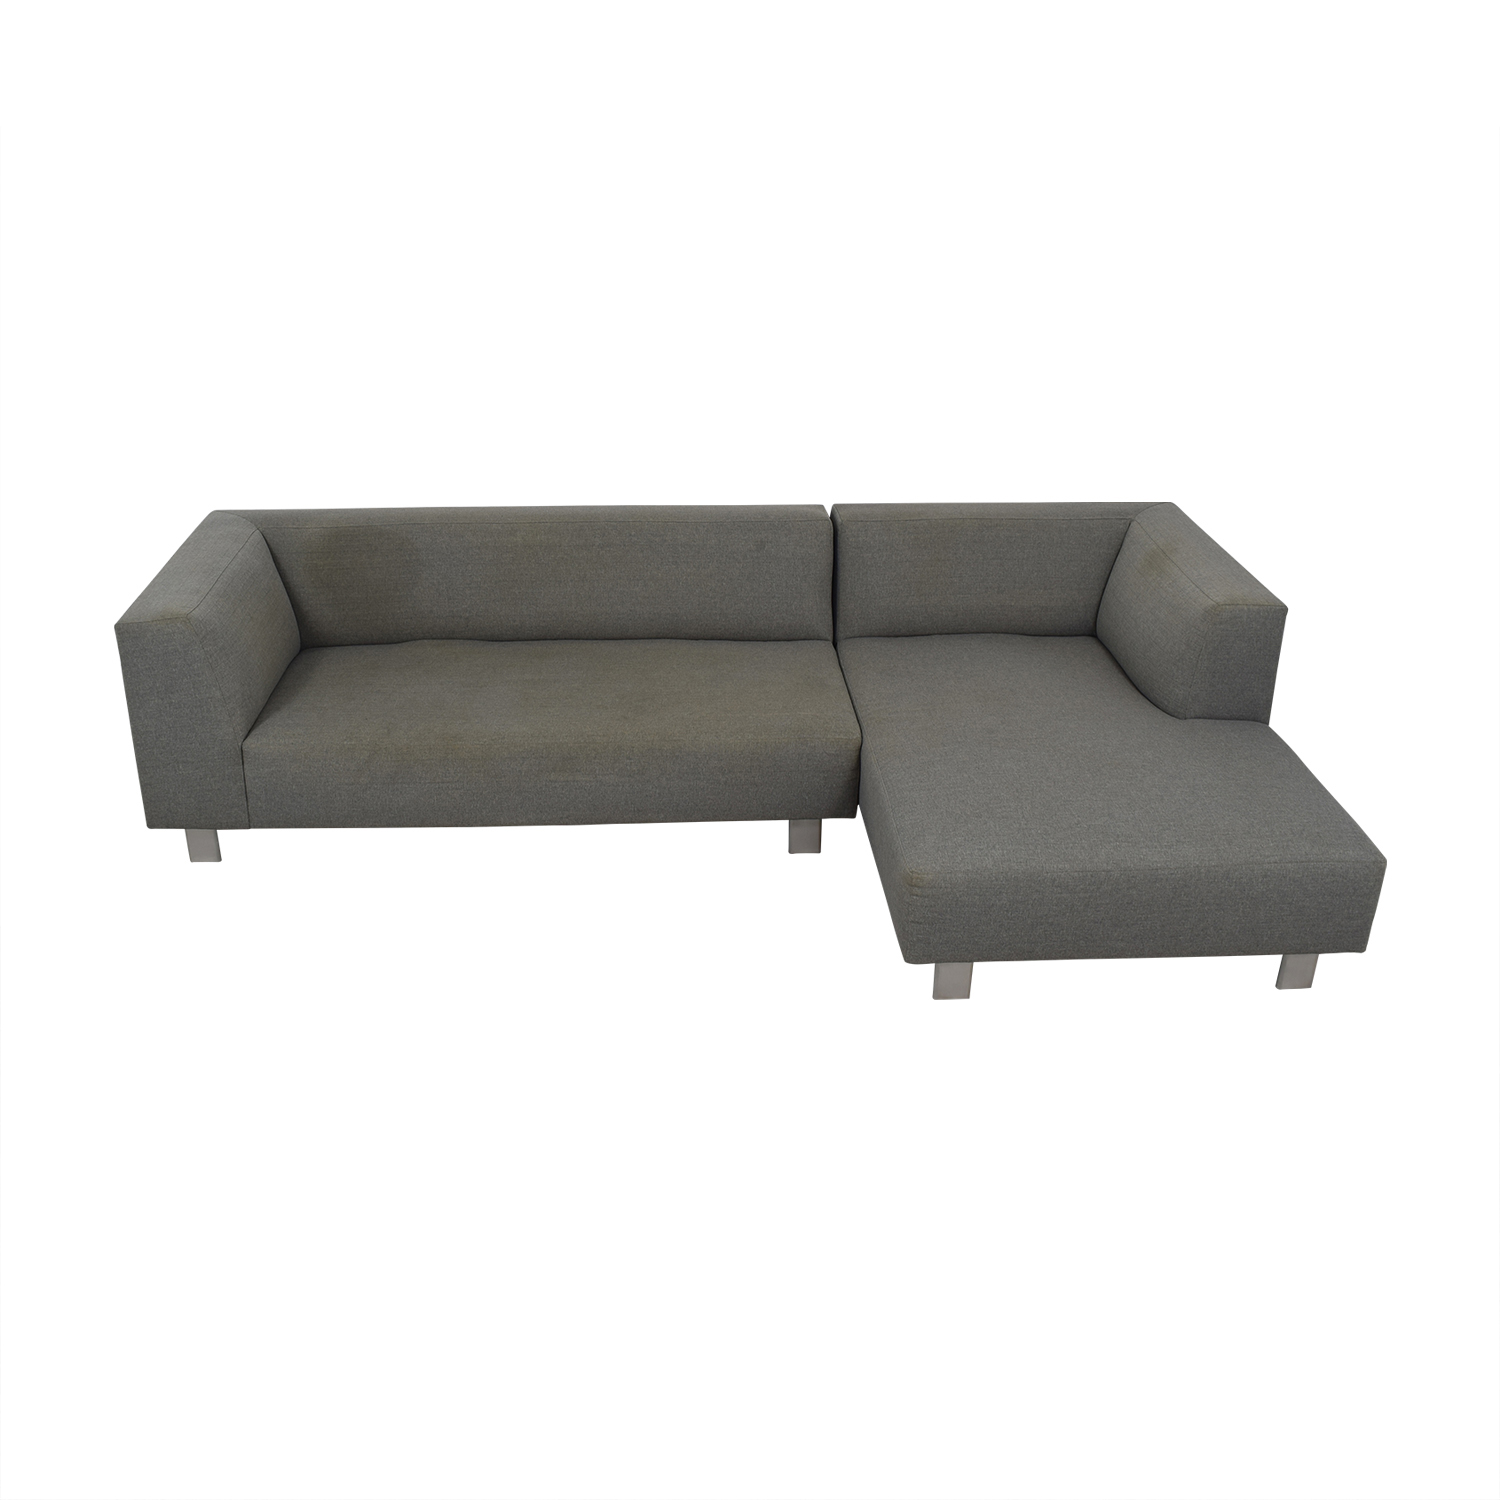 Room & Board Room & Board Grey Chaise Sectional used